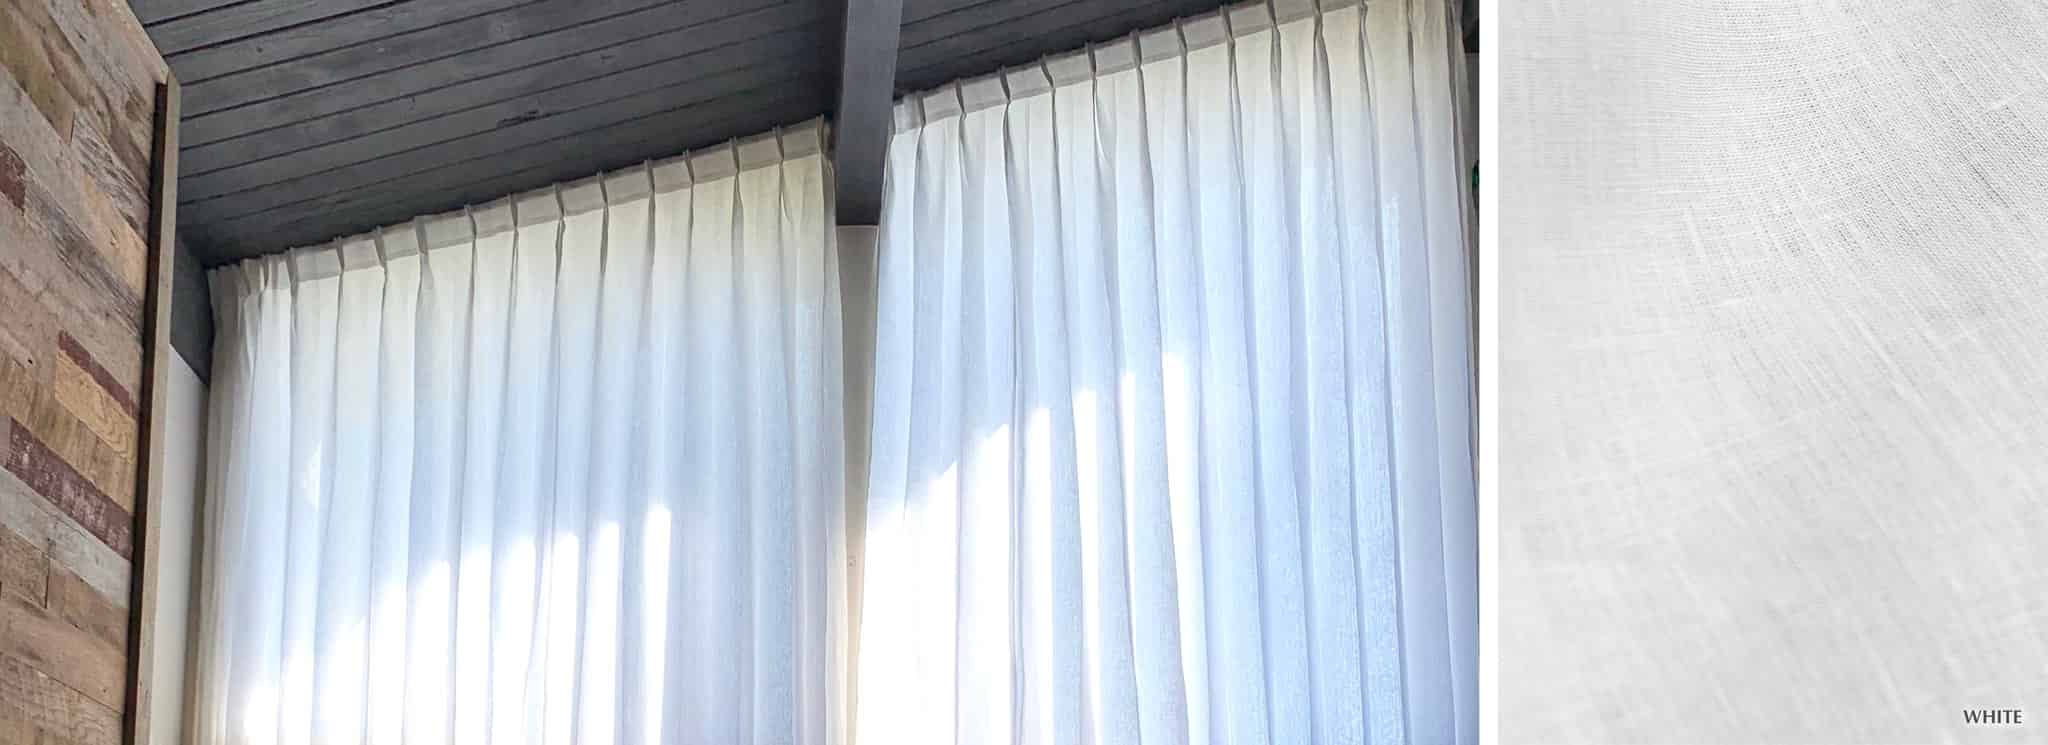 Lille - Collection Curtains Pure white linen semi-sheer Fabric